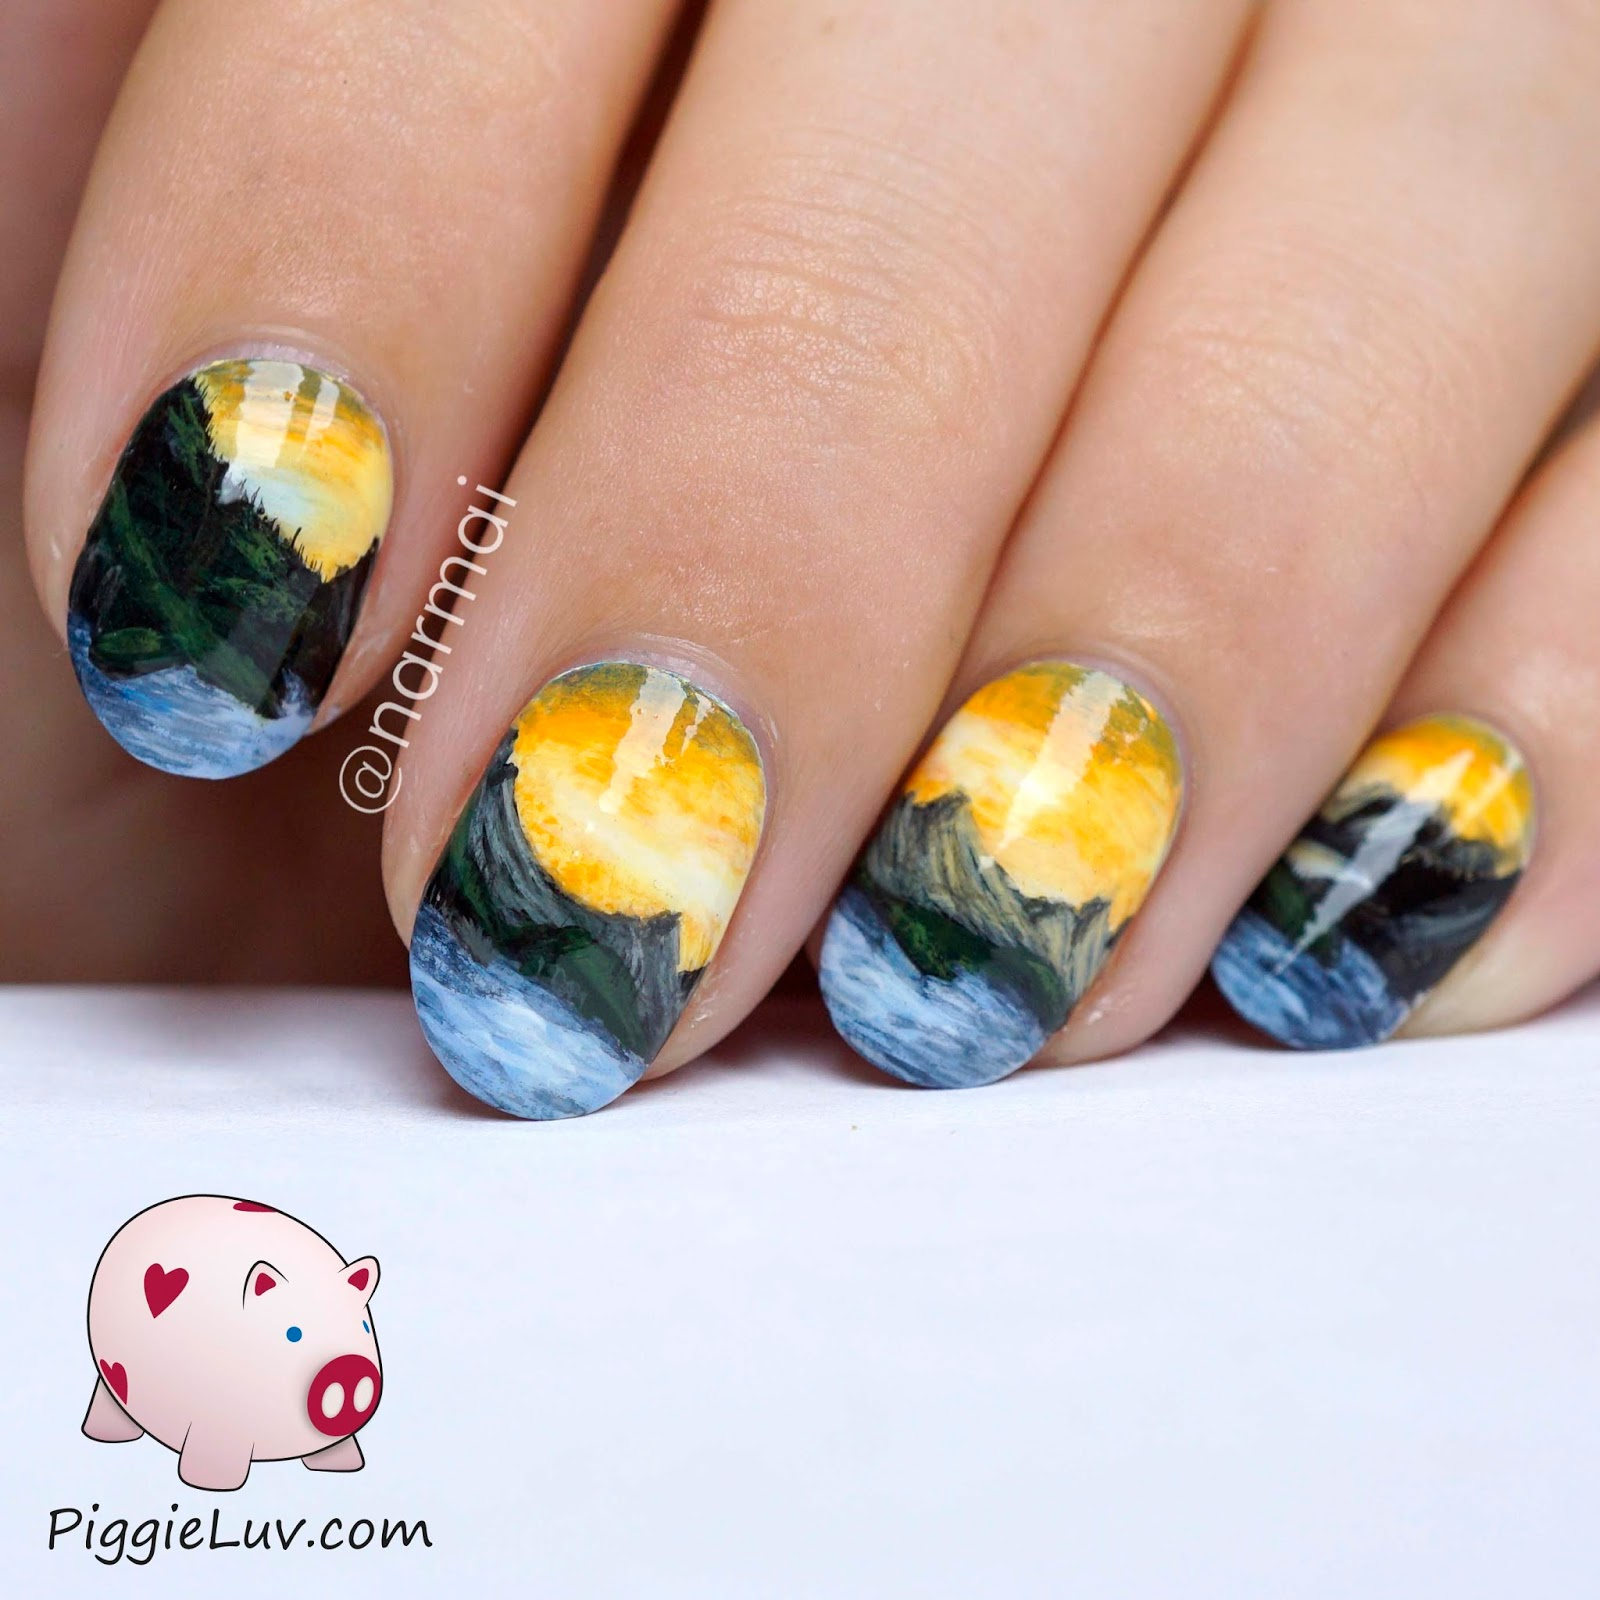 Piggieluv Freehand Mountain Landscape Nail Art